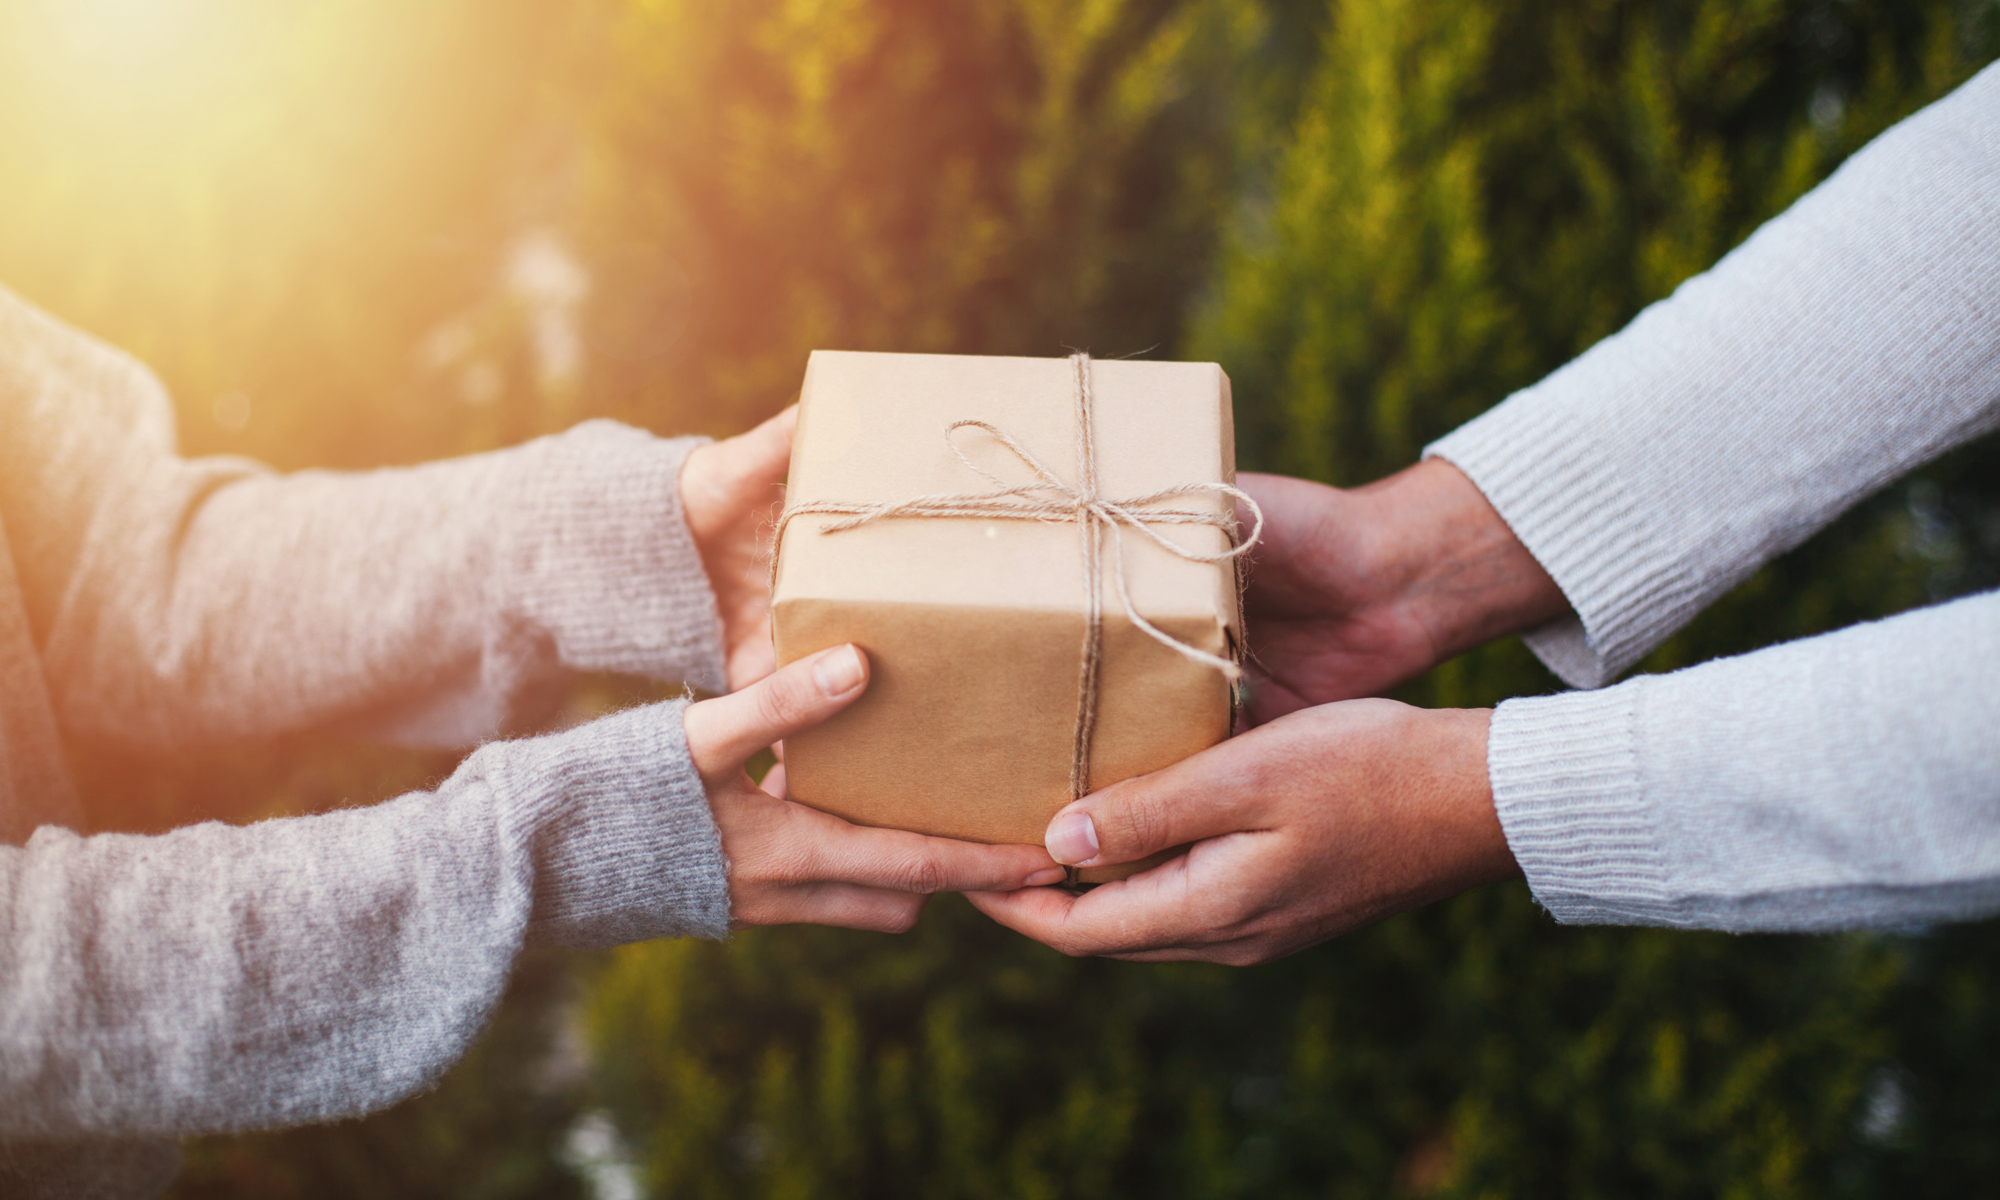 How We Turned Our Family S Holiday Gift Exchange Into A Chance To Really Connect